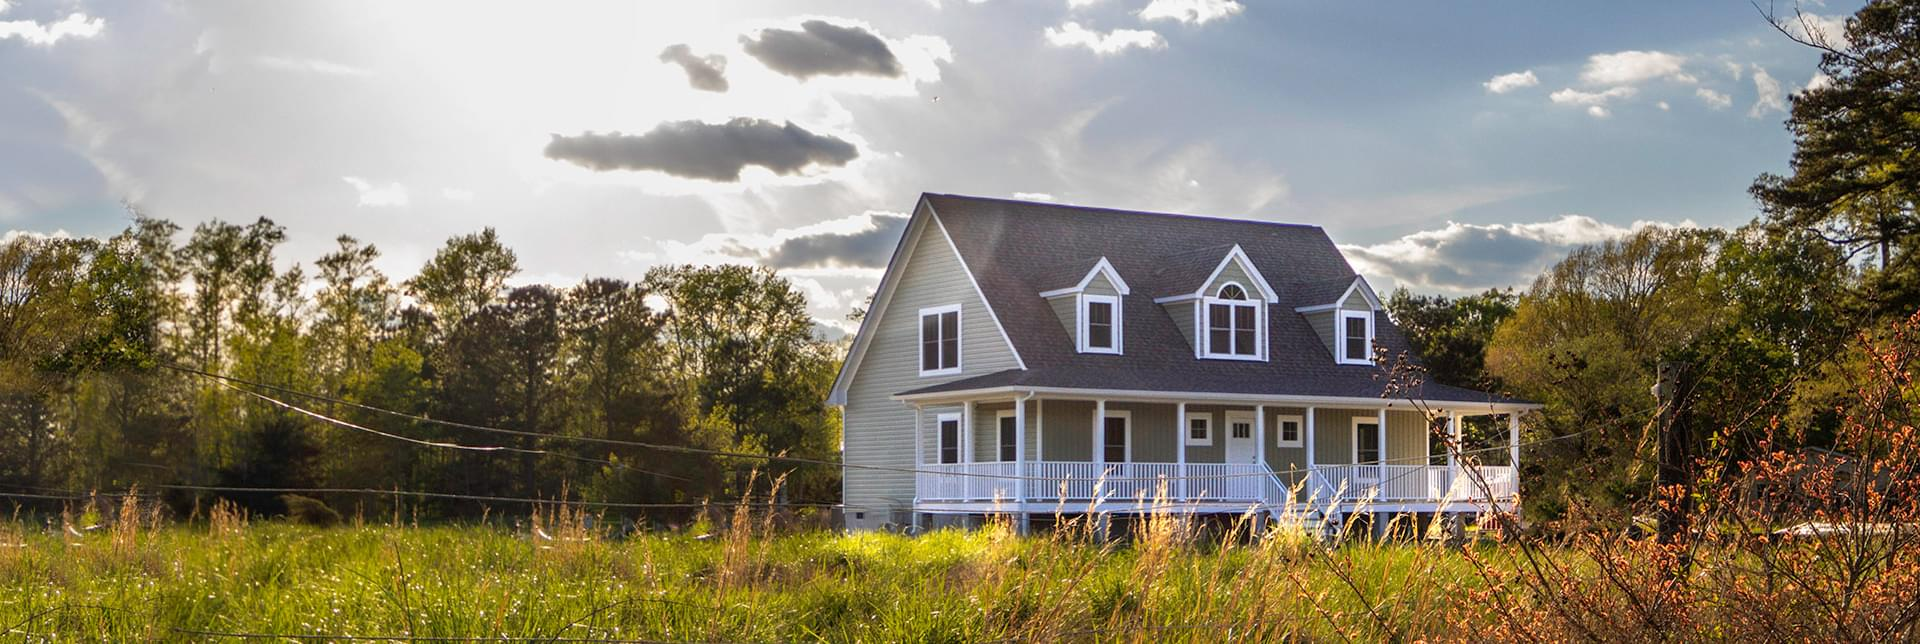 New Homes in Gates County NC